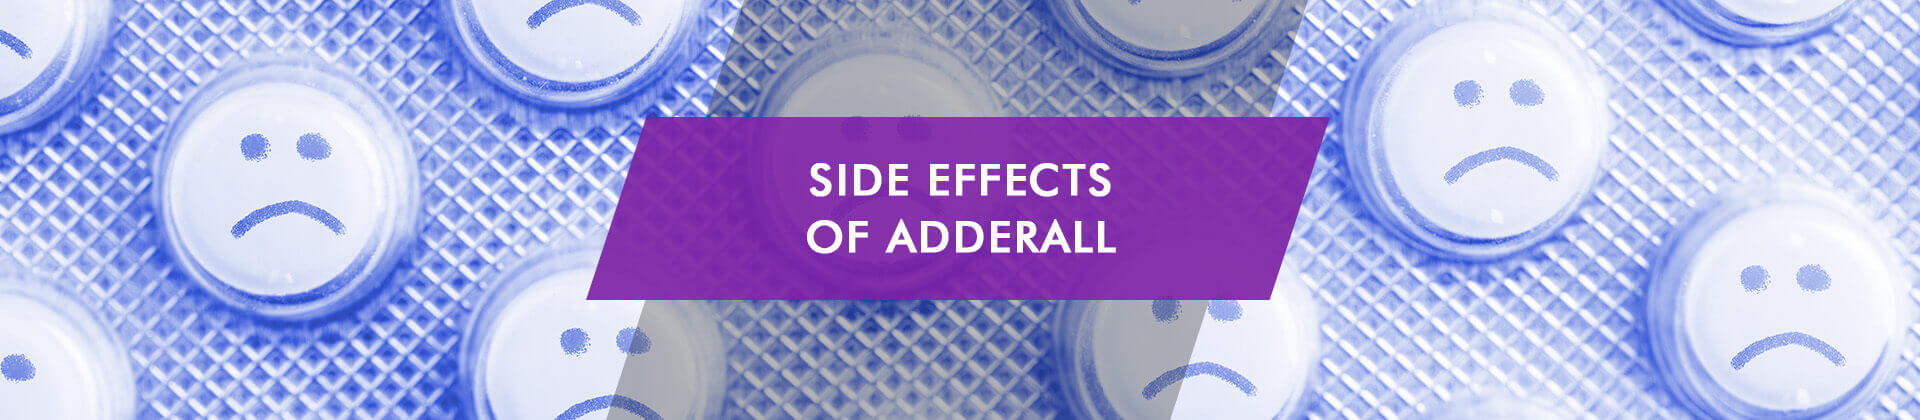 Adderall Side Effects Long Term And Short Term Adverse